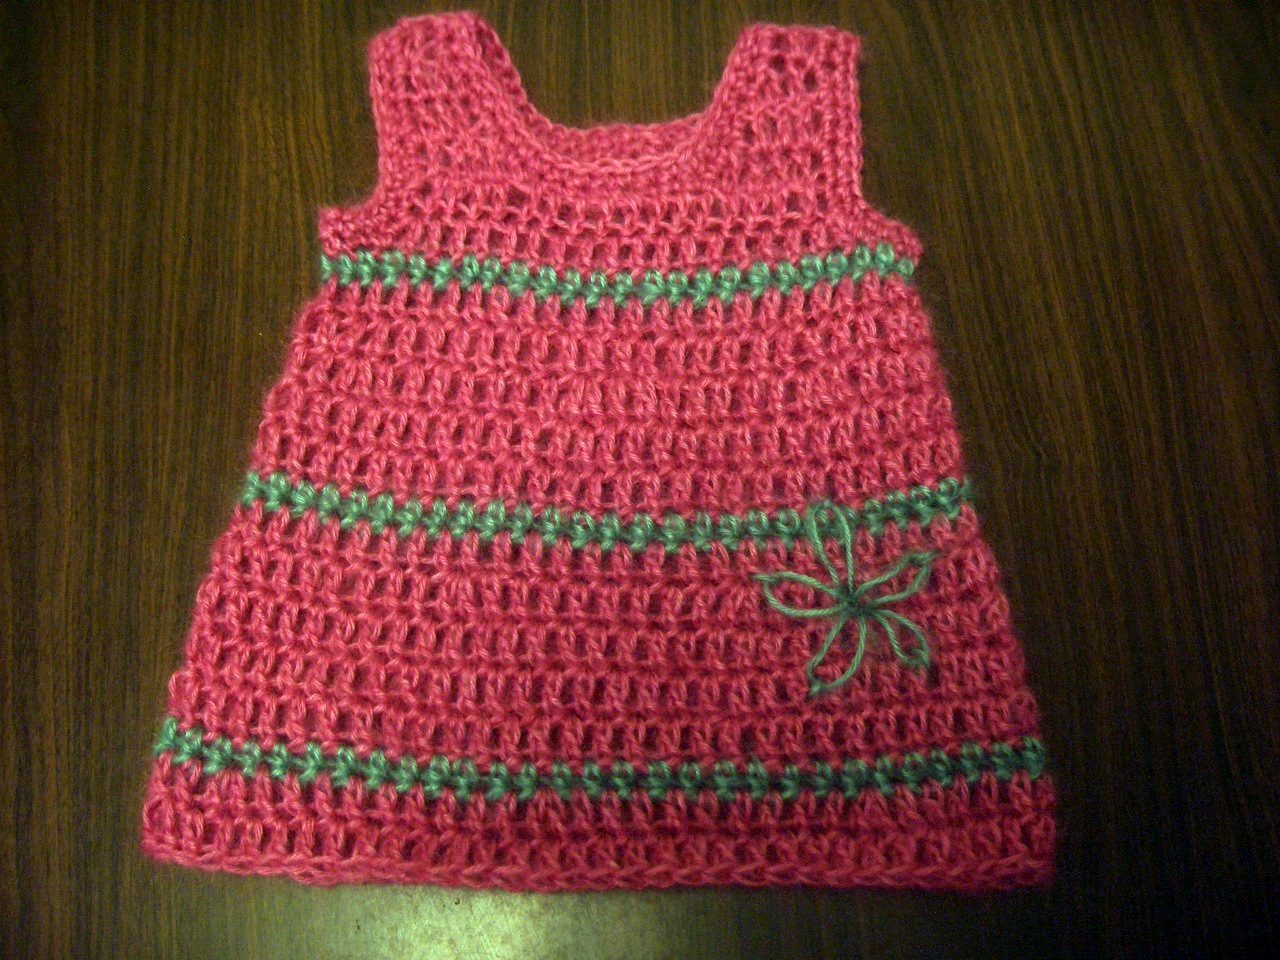 Free Crochet Toddler Tank Top Pattern : Crochet Tank Top - Viewing Gallery